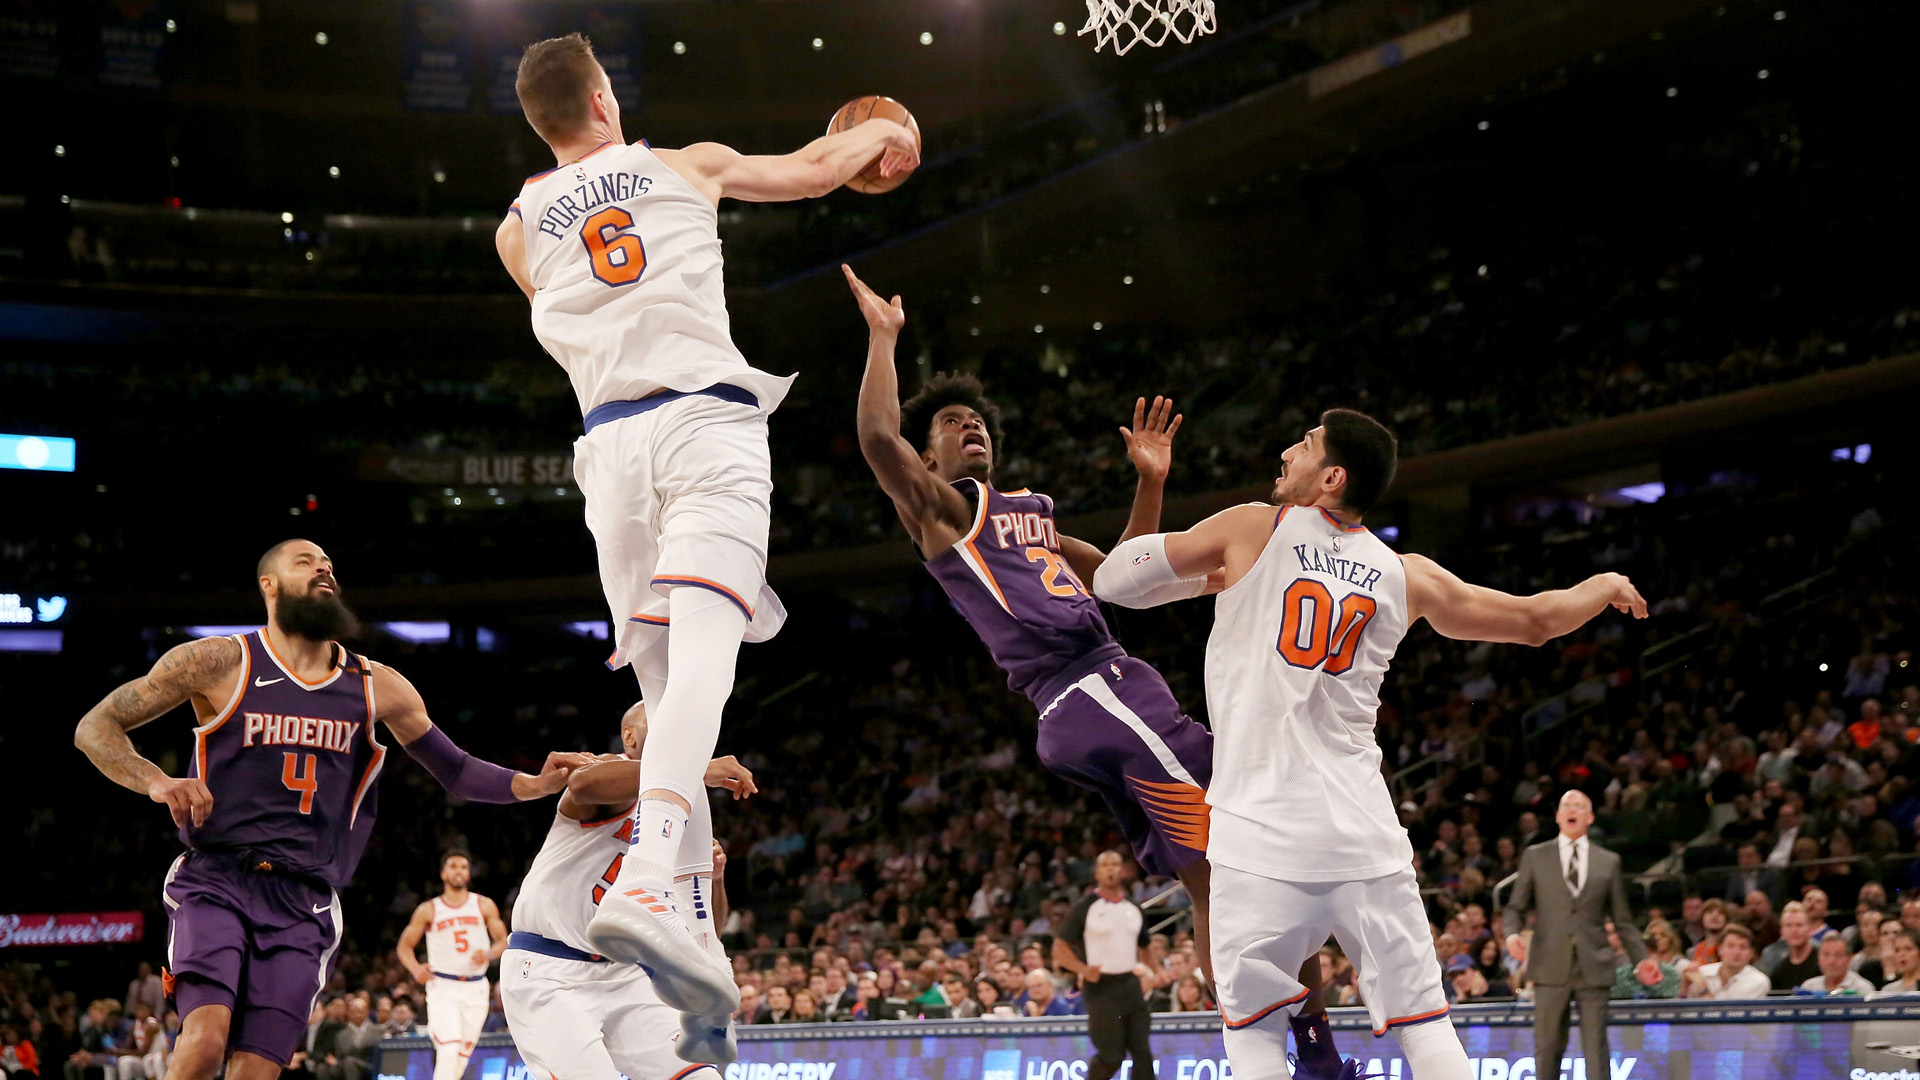 Knicks' Michael Beasley starting in place of Kristaps Porzingis on Saturday